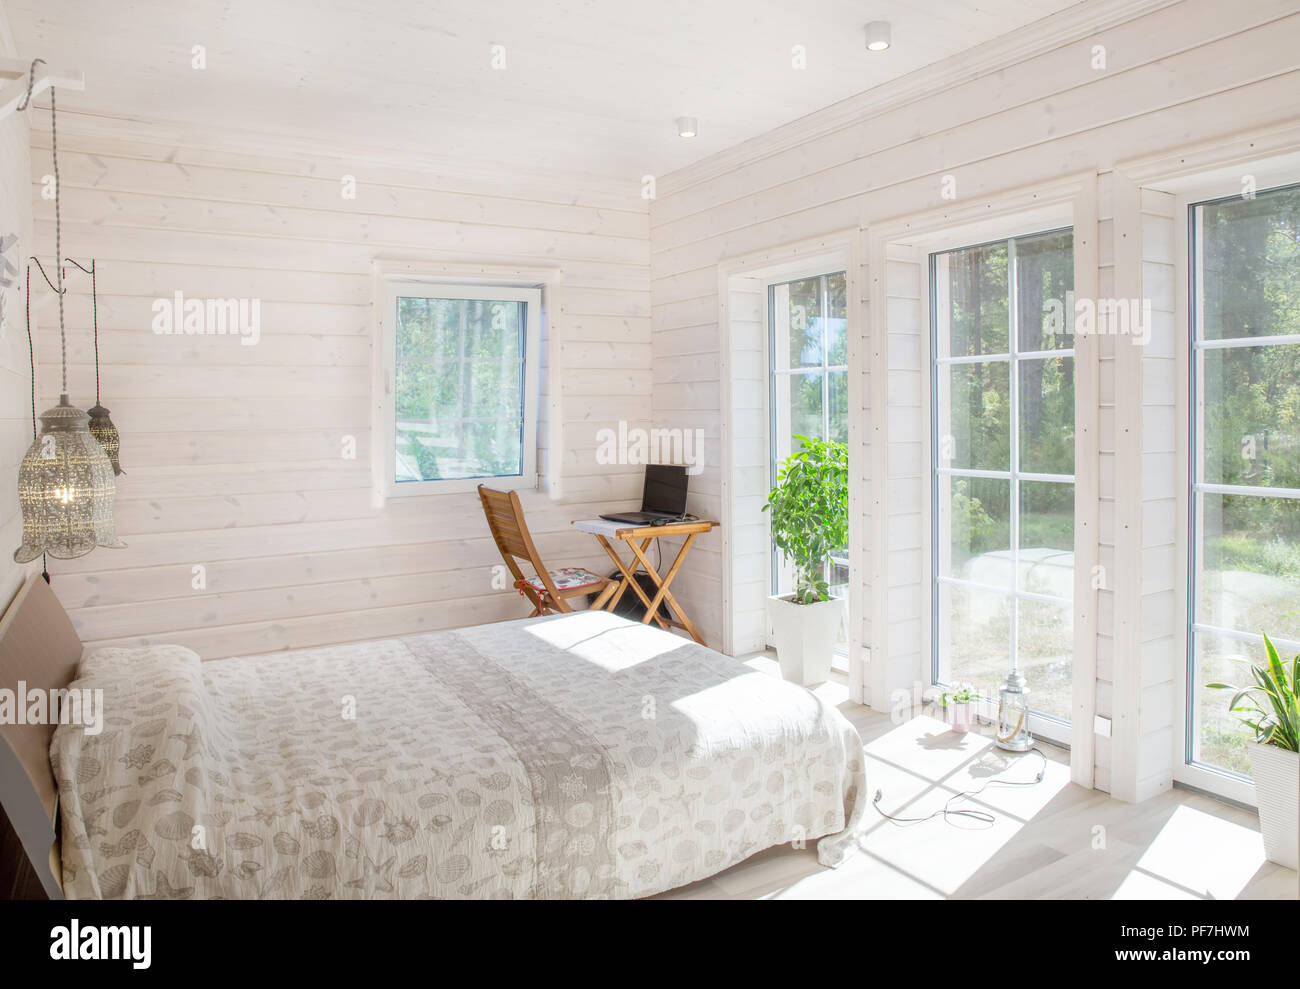 Home And Garden Concept Bright And Comfortable Bedroom